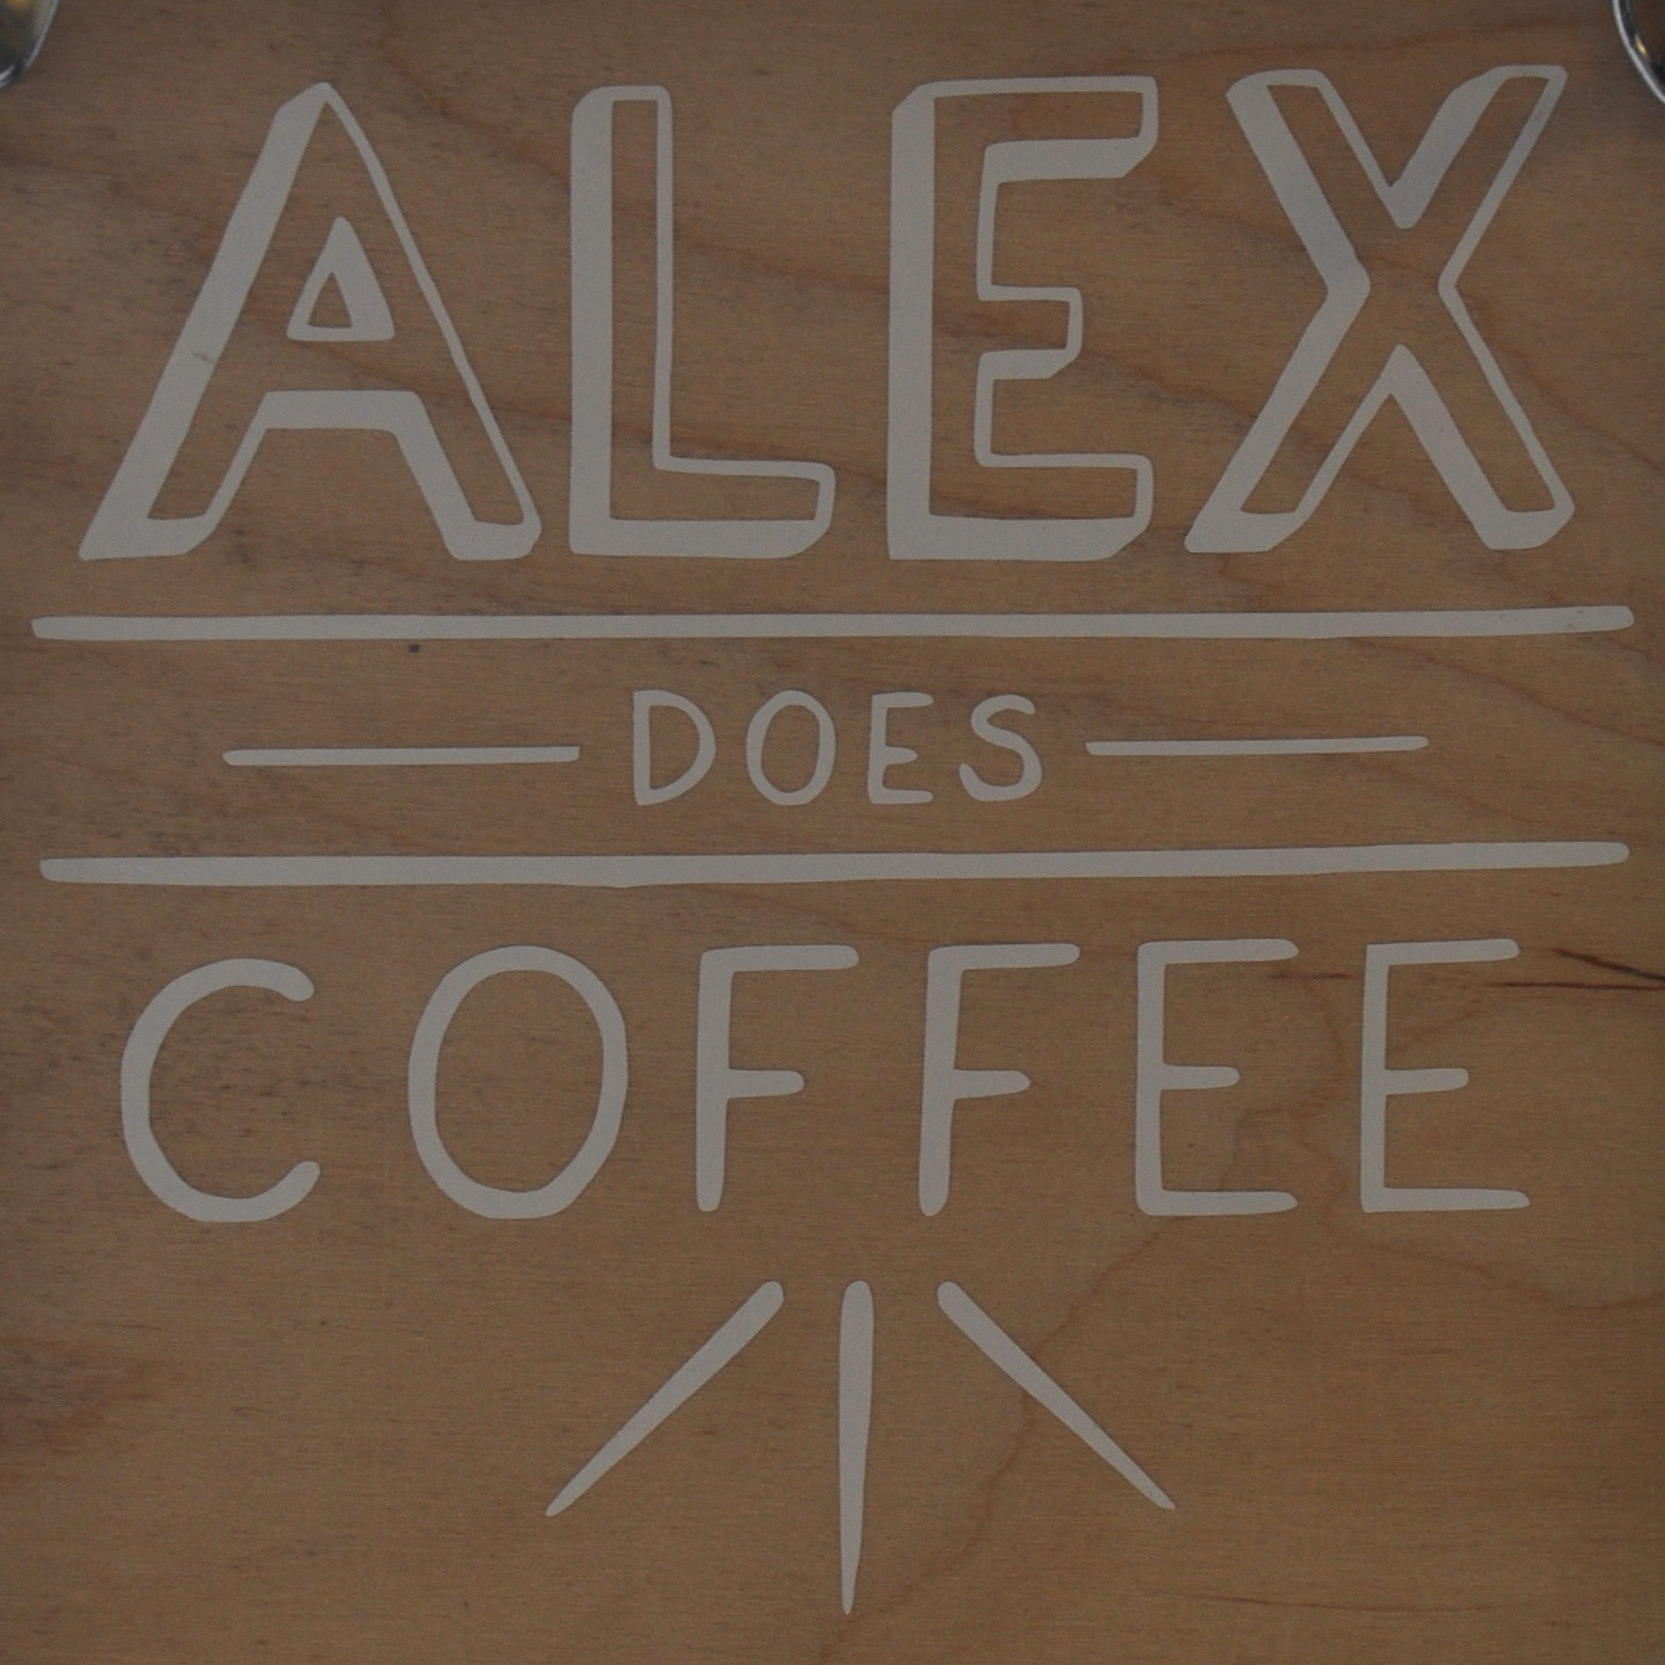 Details from the sign hanging on the door of Alex Does Coffee